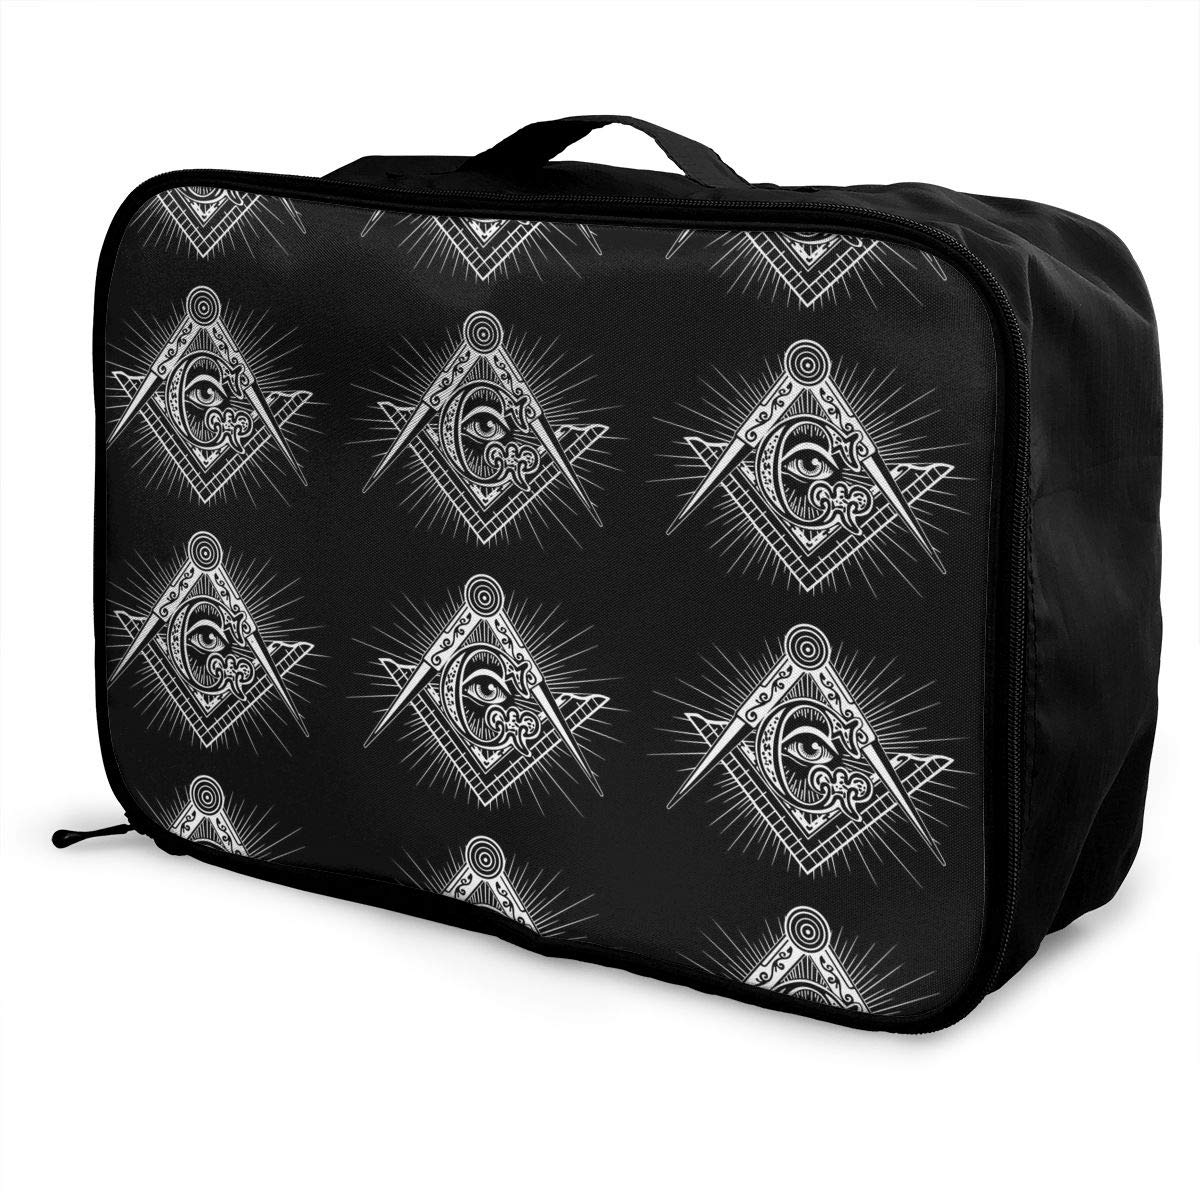 Large Capacity Portable Weekend Bag Overnight Tote Bag Foxes On Bicycle Luggage Duffel Bag for Women Girls